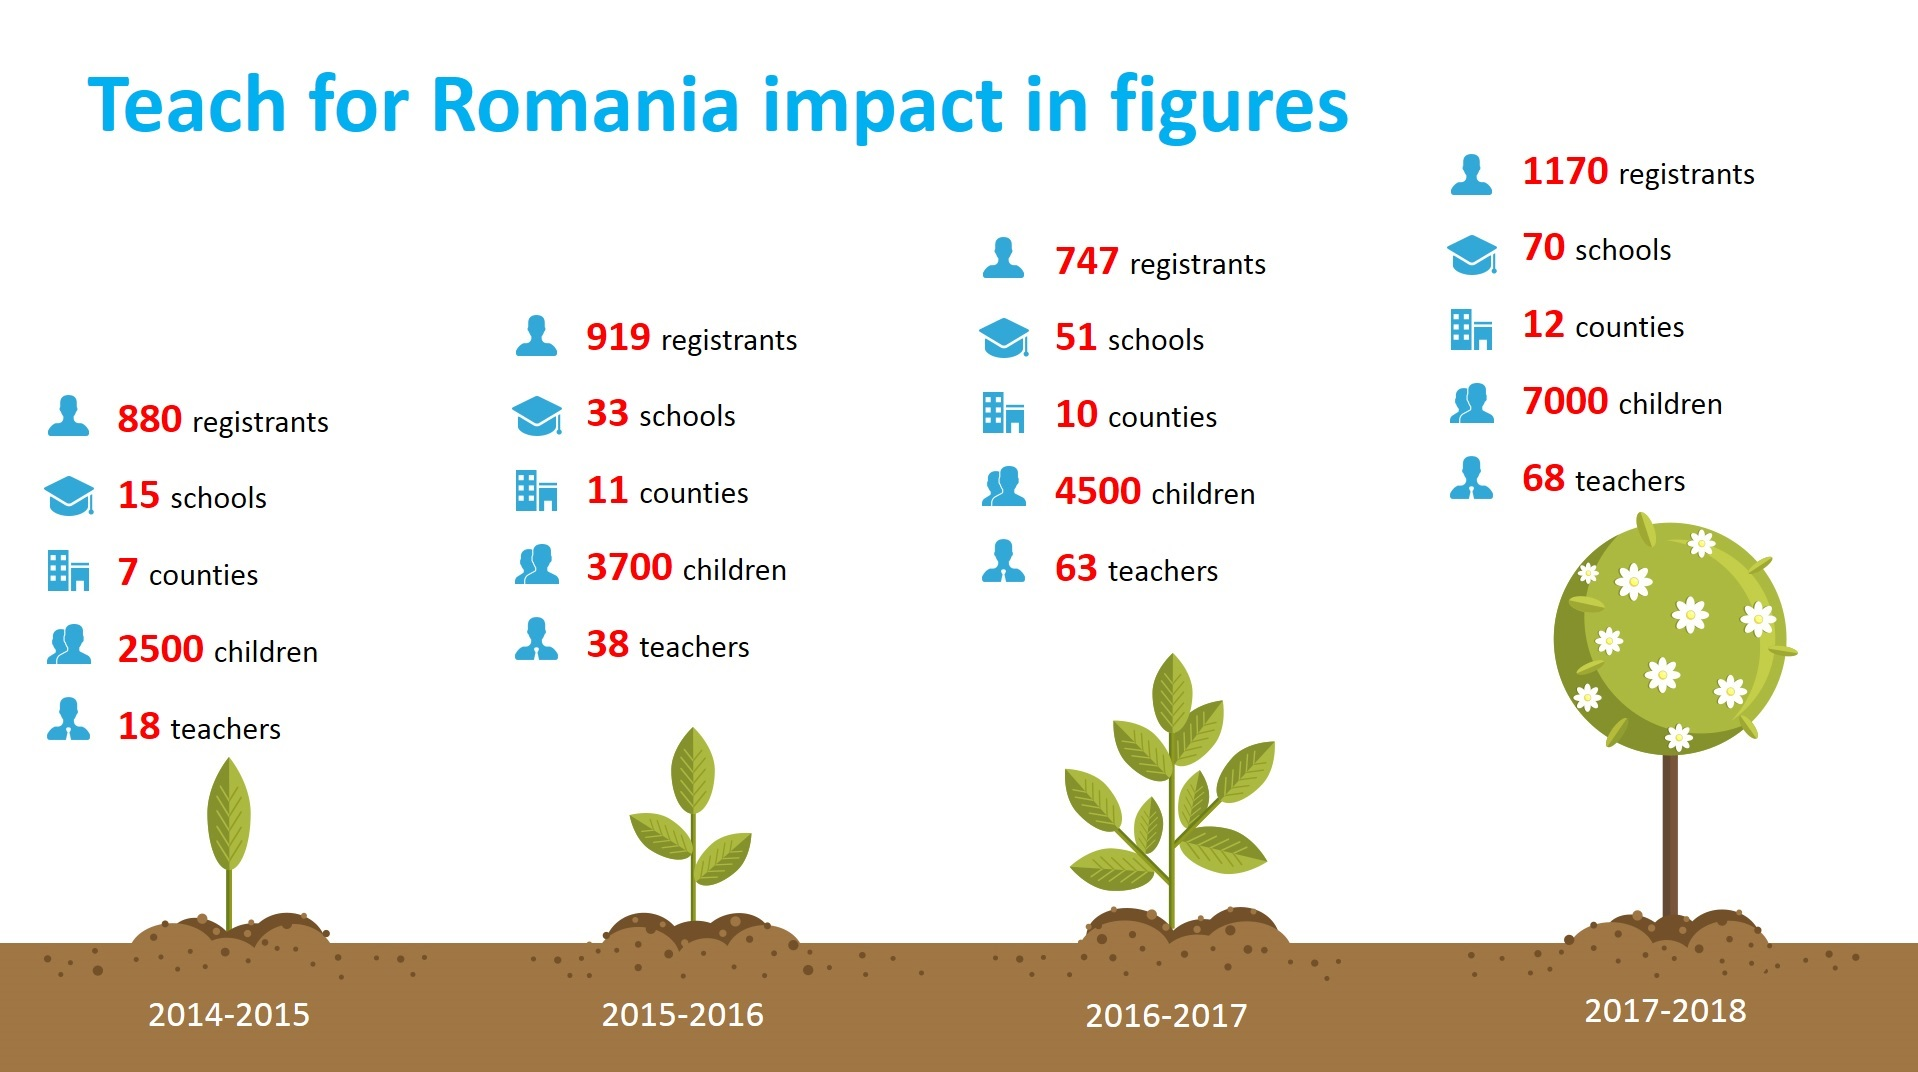 Teach for Romania impact in figures